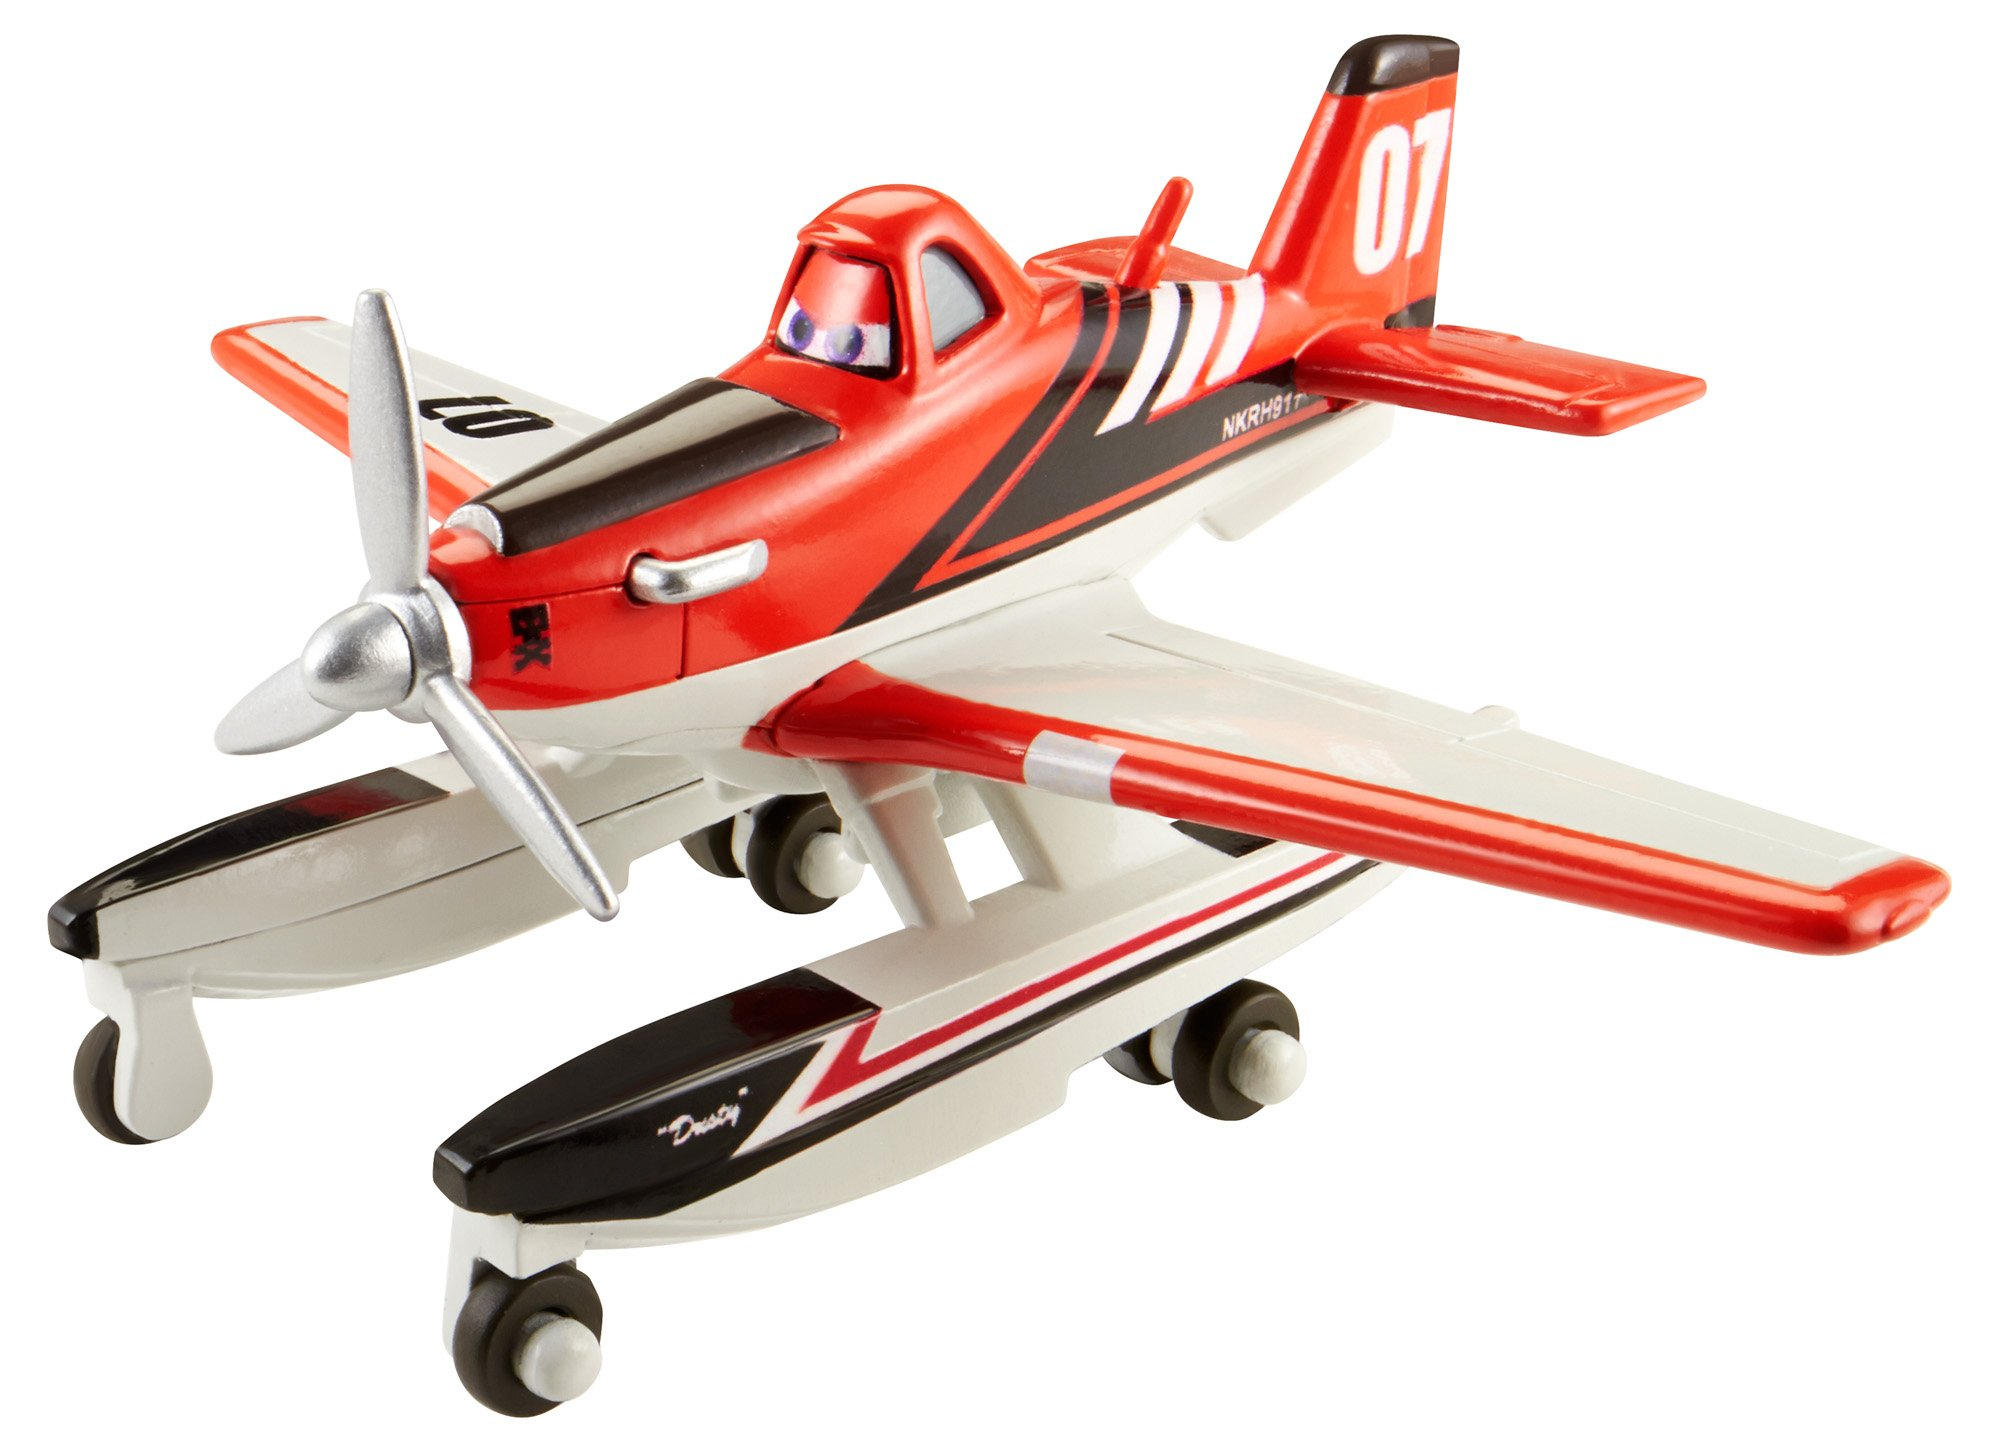 Disney Planes Fire and Rescue Dusty with Pontoons Die-cast Vehicle